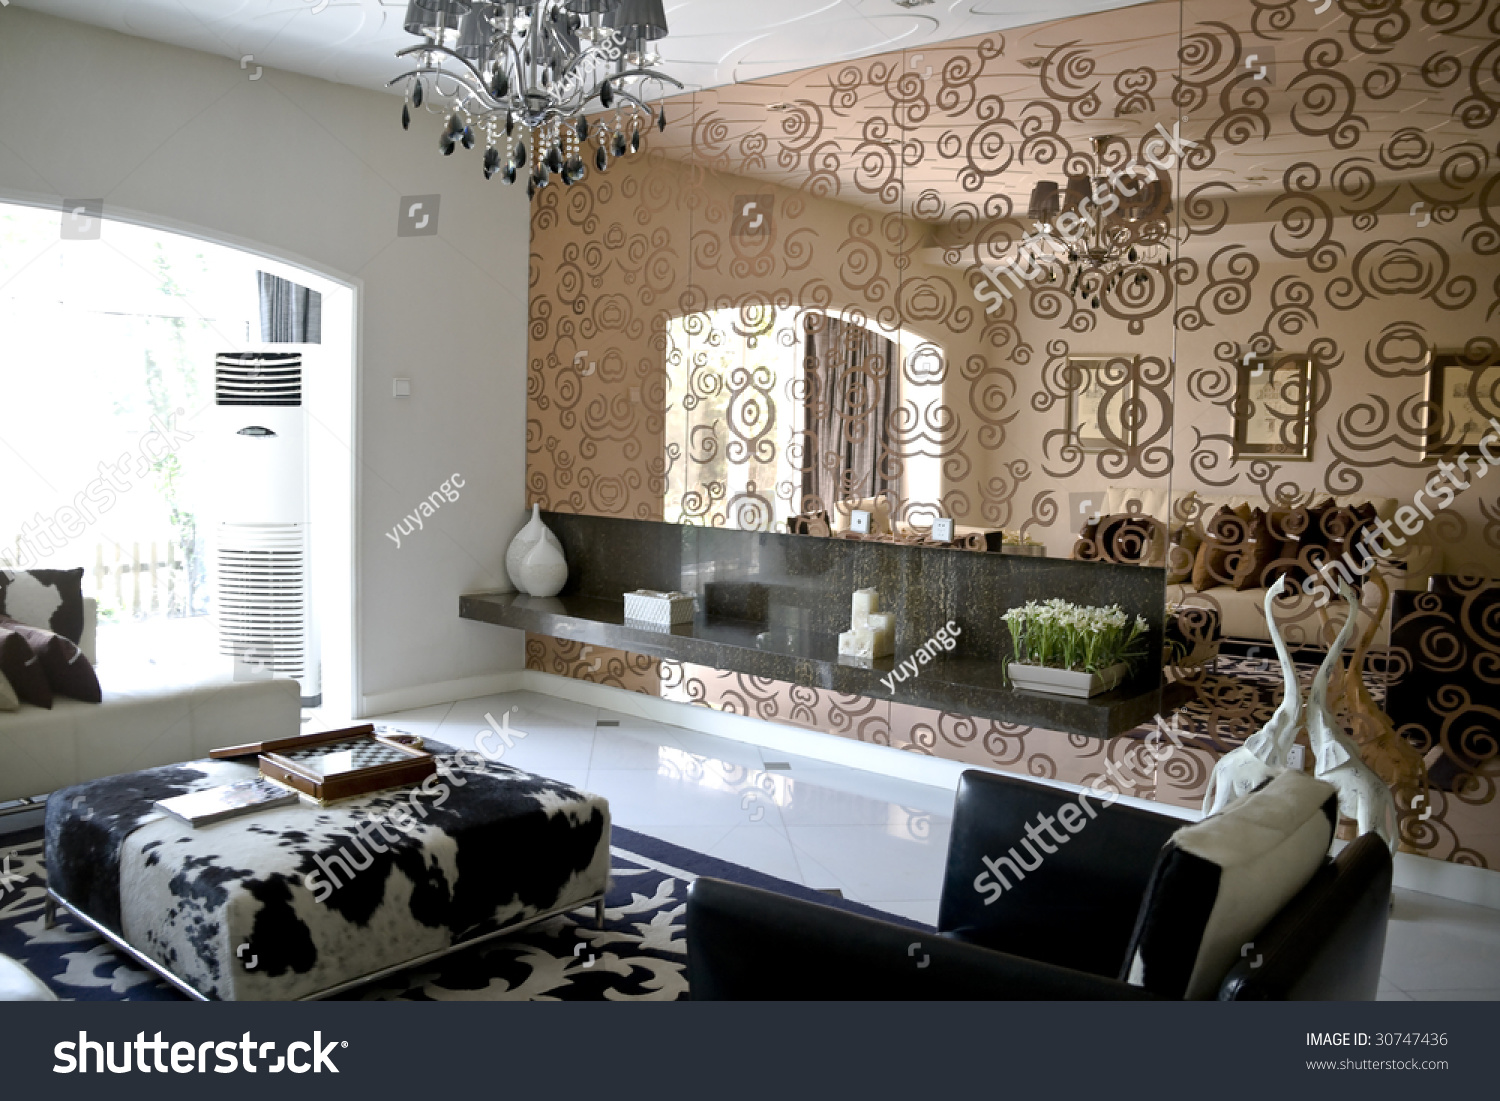 Luxury Modern Living Room With Mirror Wall Stock Photo 30747436 Shutterstock Part 56